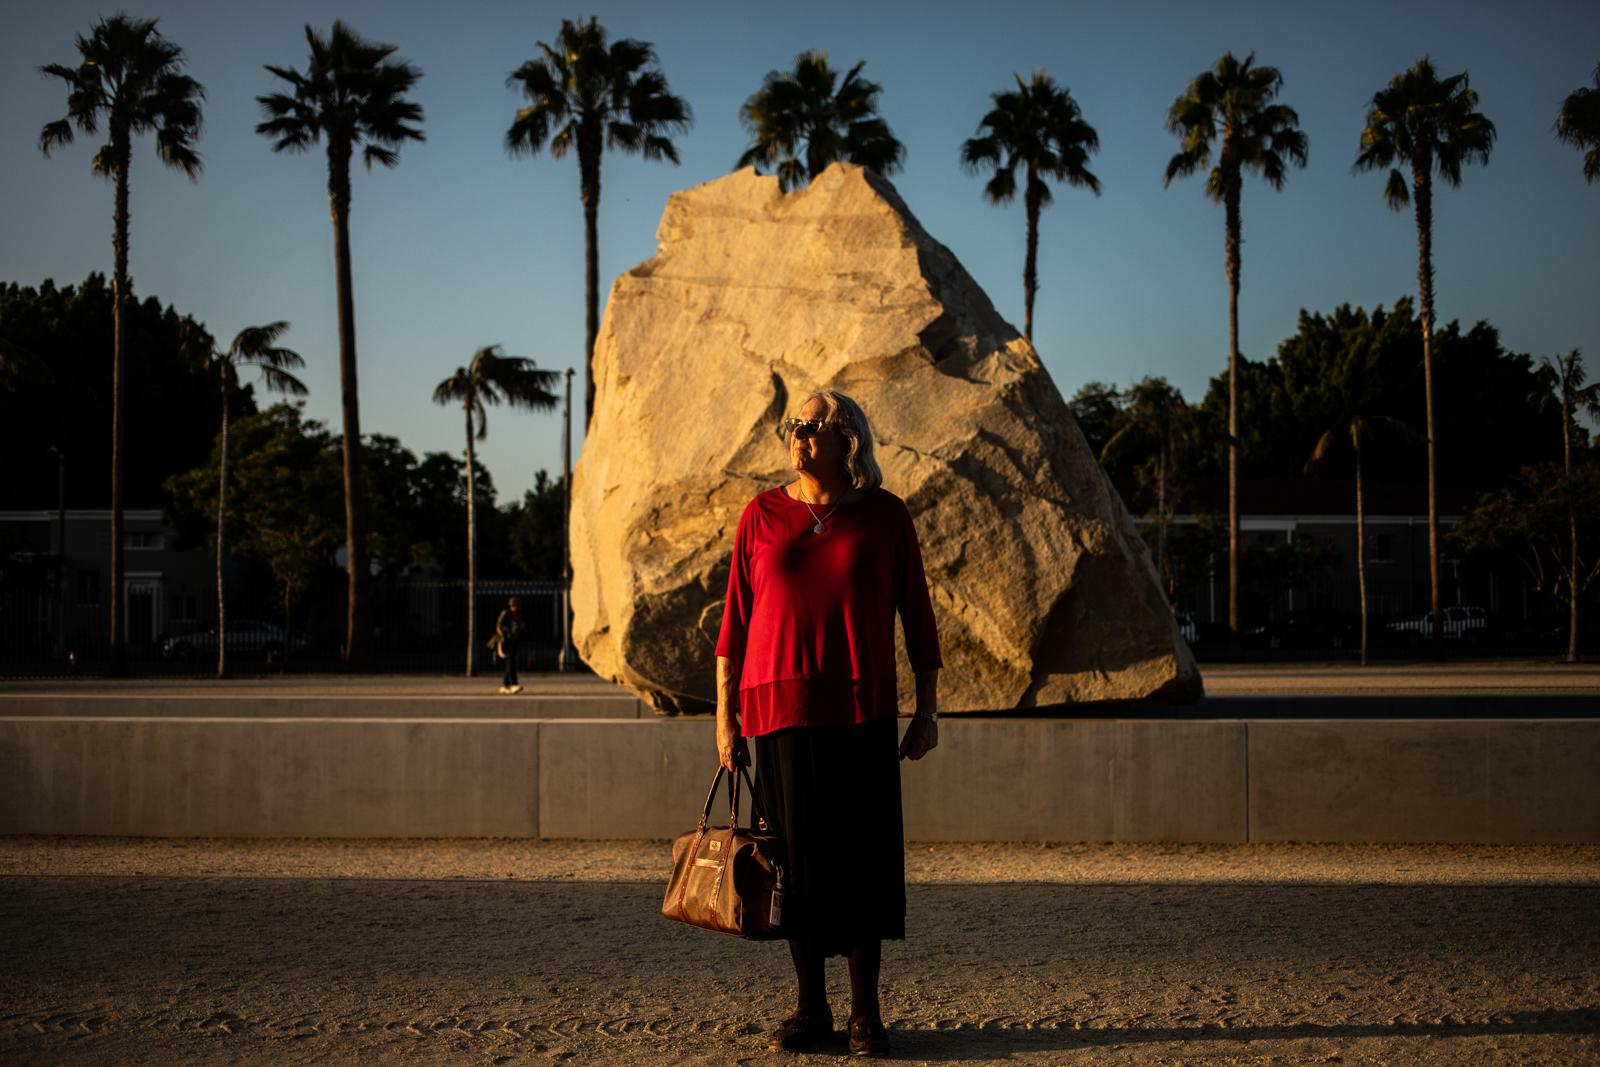 Malinda Lodge, 68, stands for a portrait while holding her magic bag outside the LACMA in Los Angeles. Malinda became a member of the Magic Castle in 1974 and a professional magician in 1989.